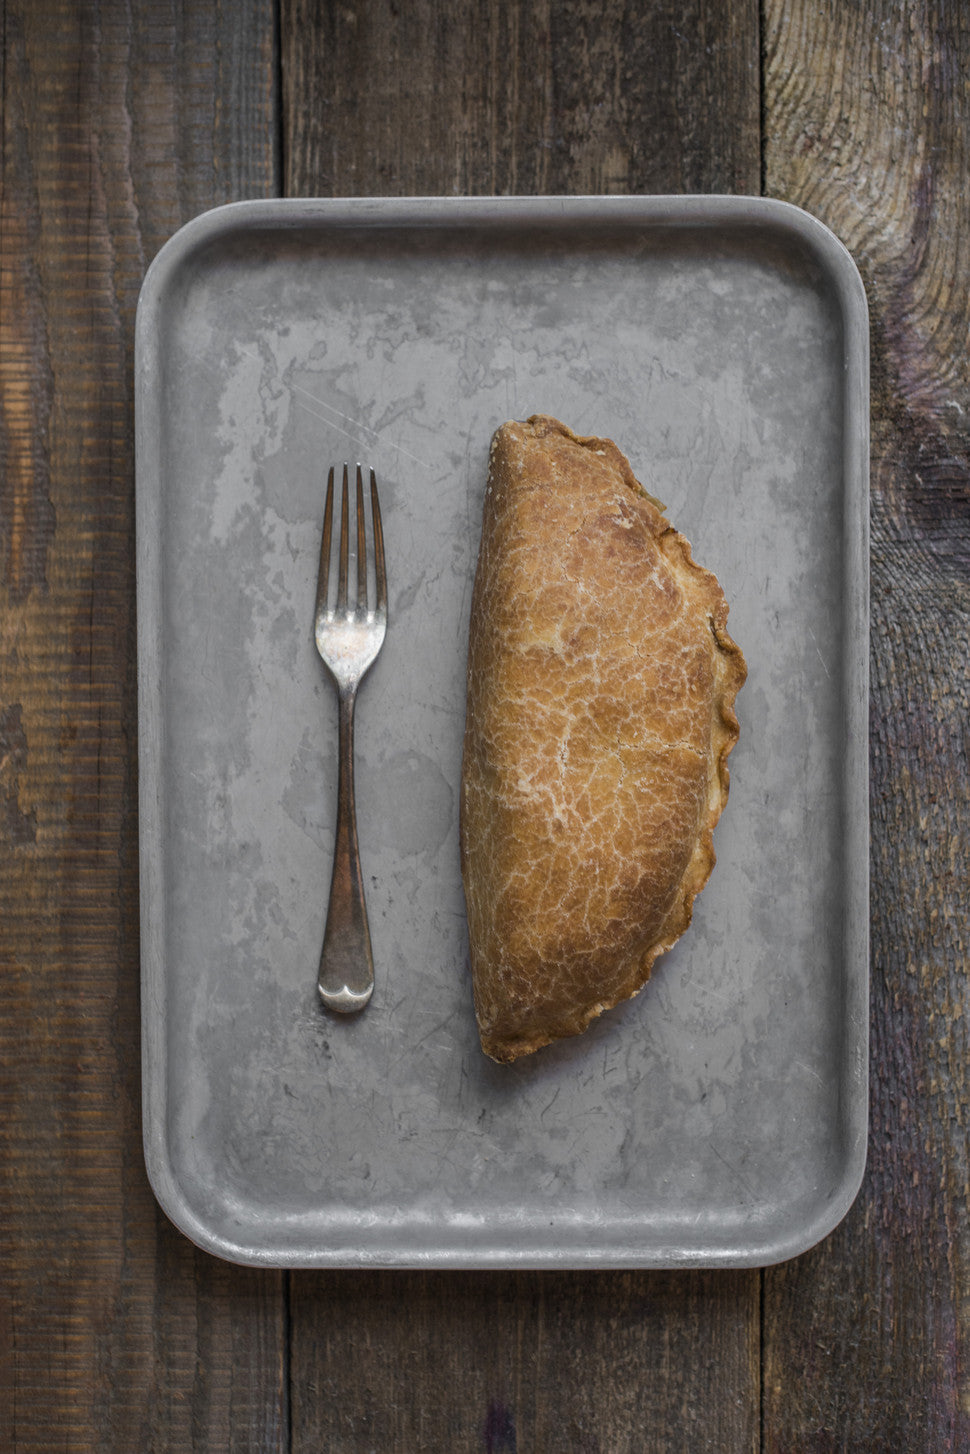 A Cornish Pasty made with equal proportions of Tamar Valley Steak, Potato, Swede and Onion encased in our crisp pastry that holds together when you bite into it.